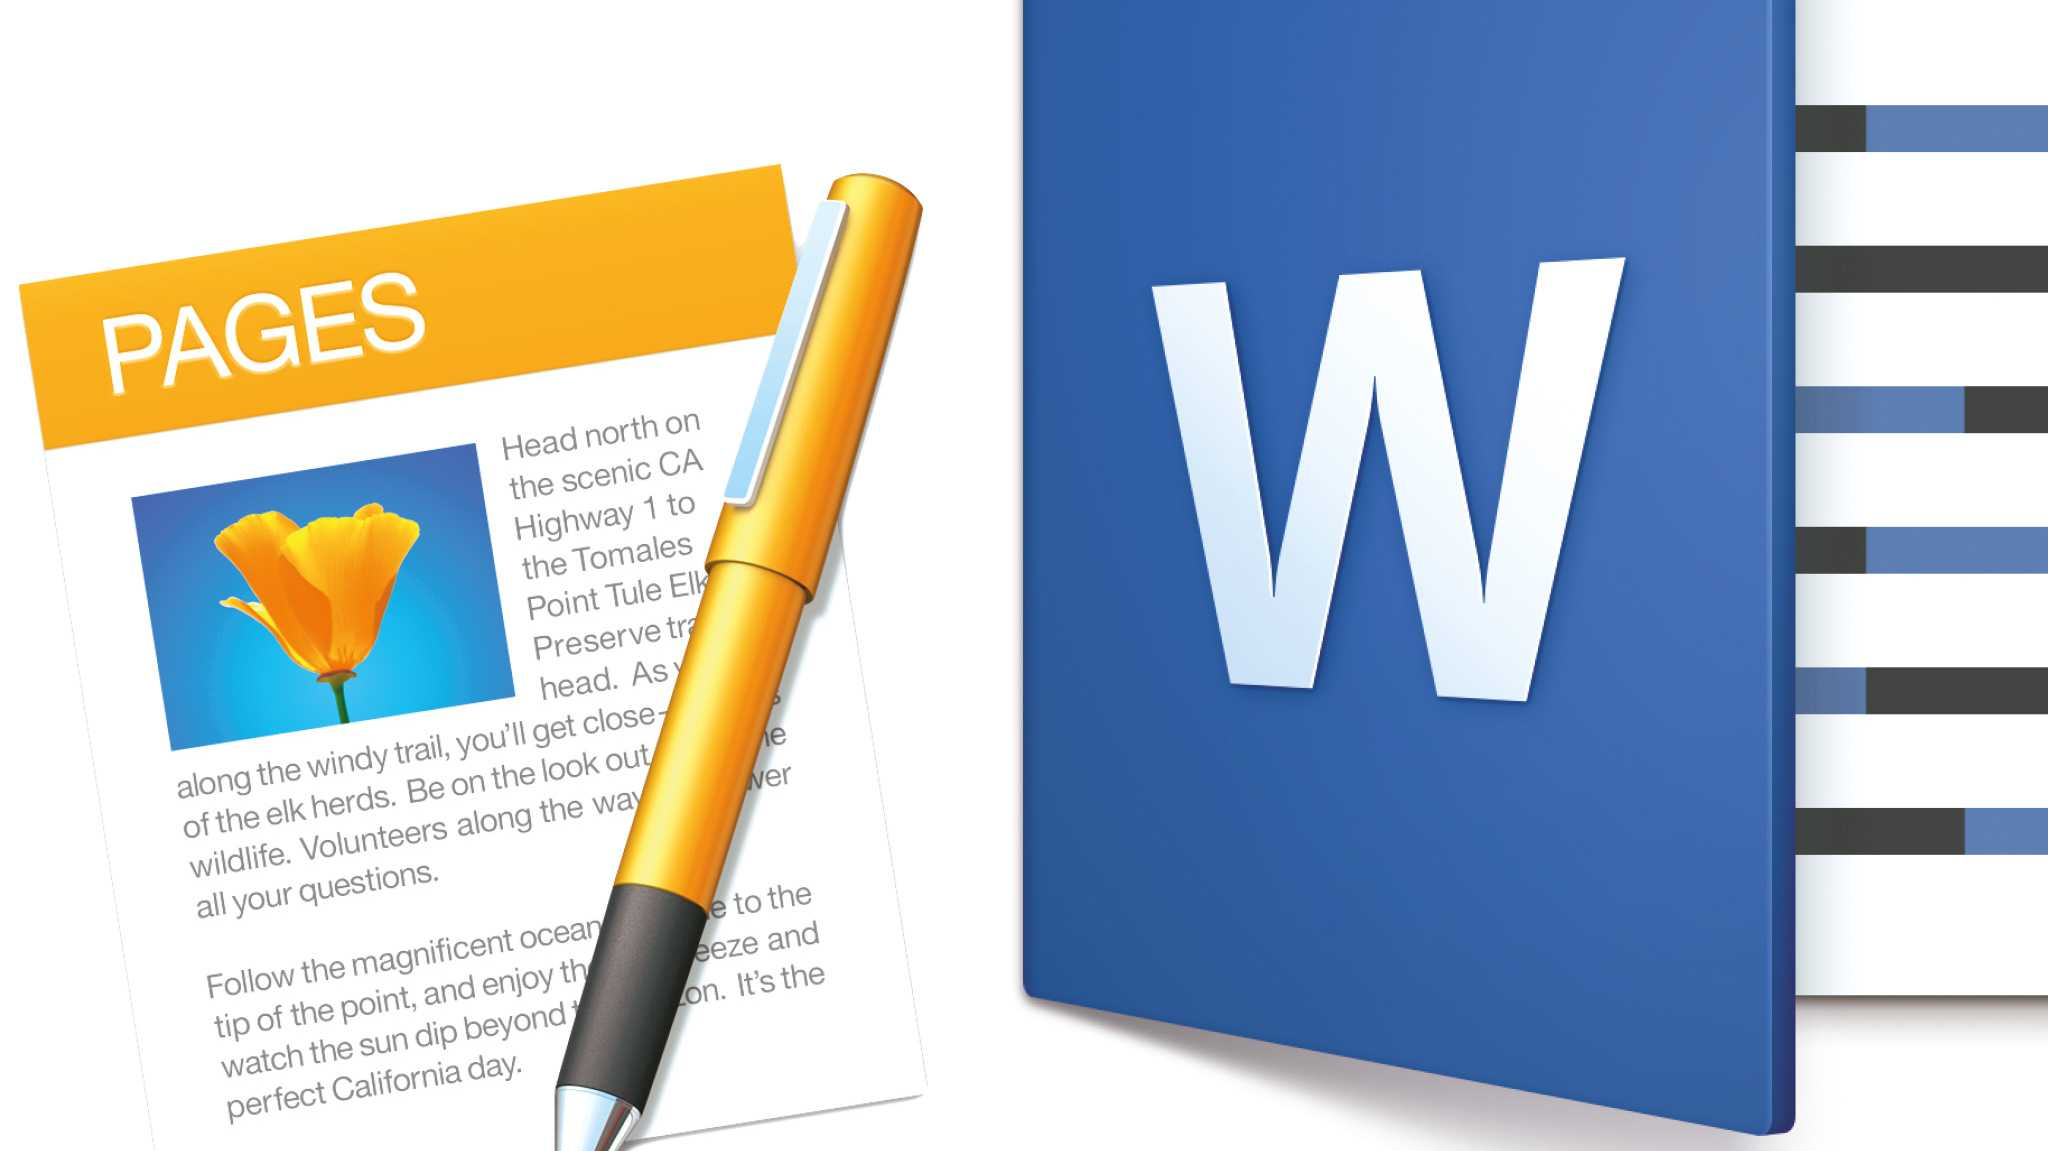 Office-Duell: Apple Pages gegen Microsoft Word